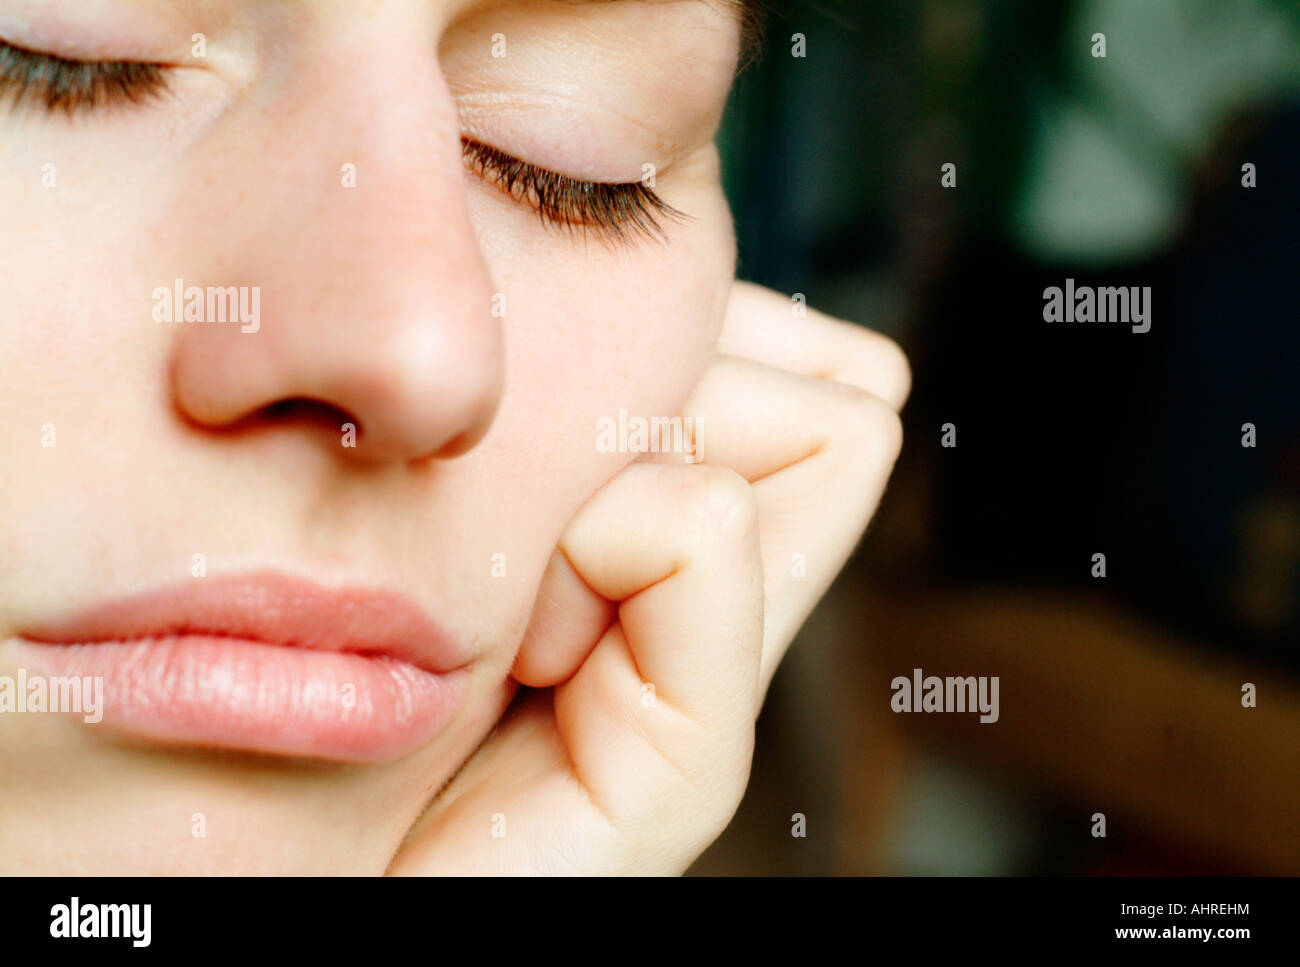 Face of a young woman - Stock Image